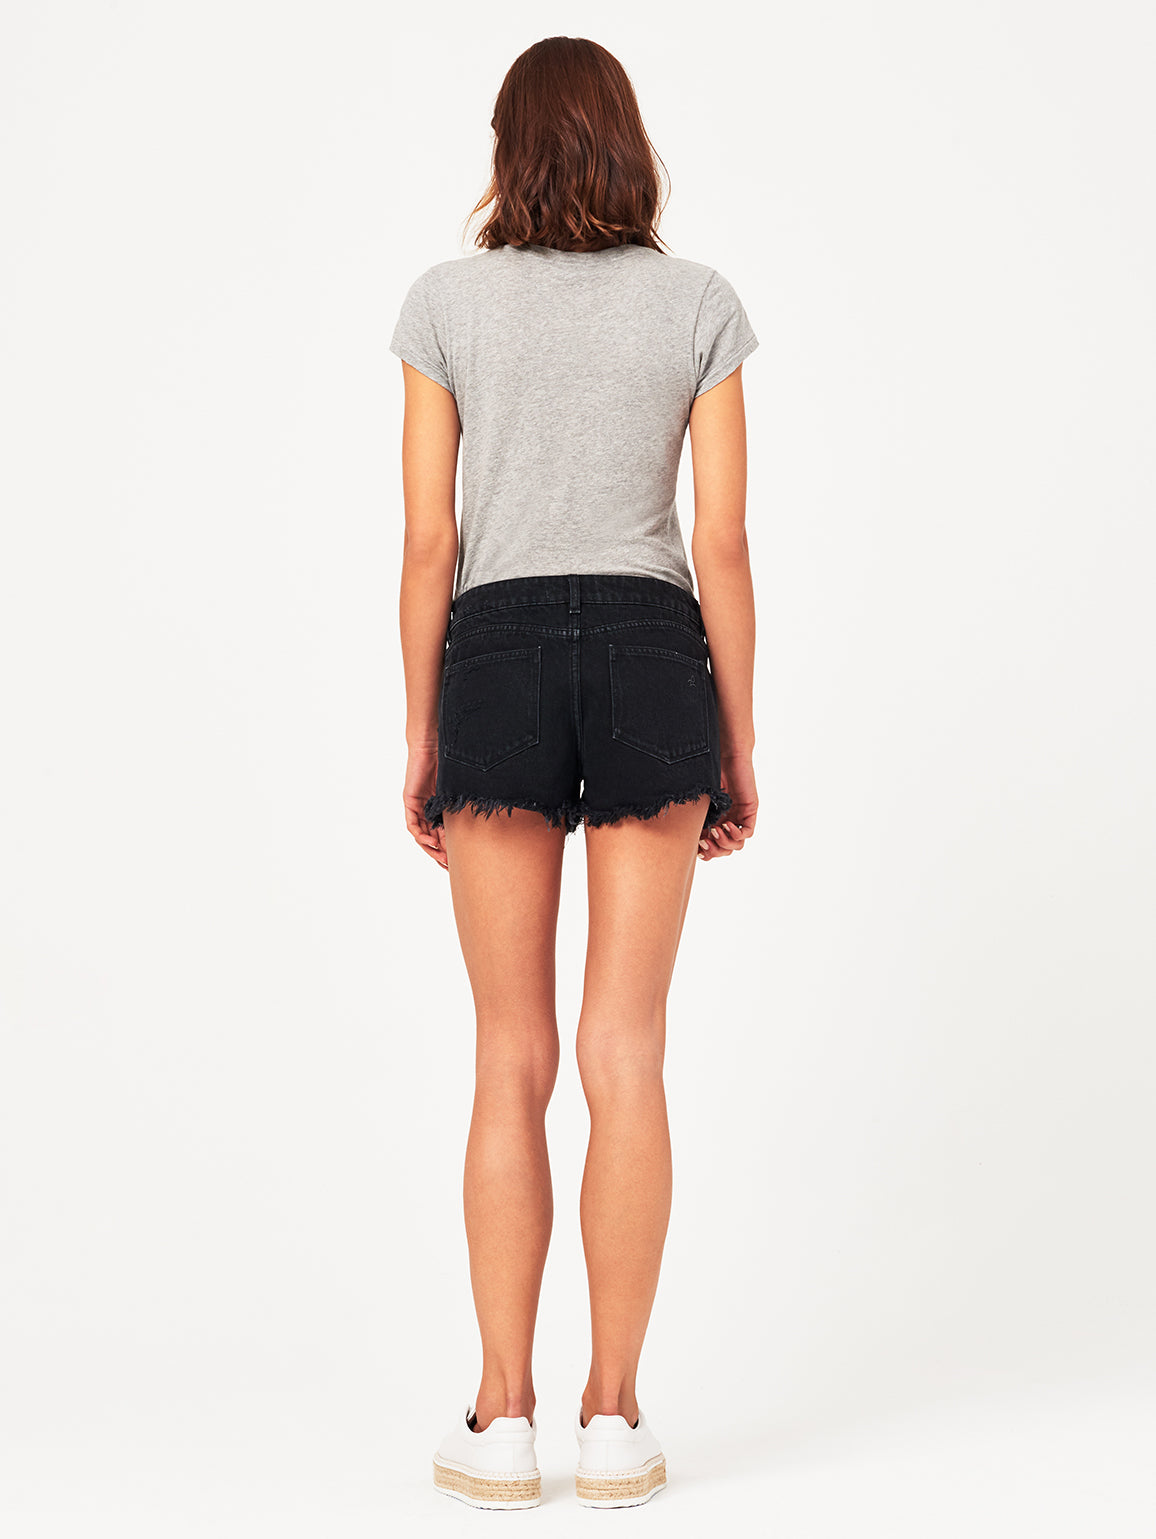 Renee Low Rise Short | Blackwood DL 1961 Denim